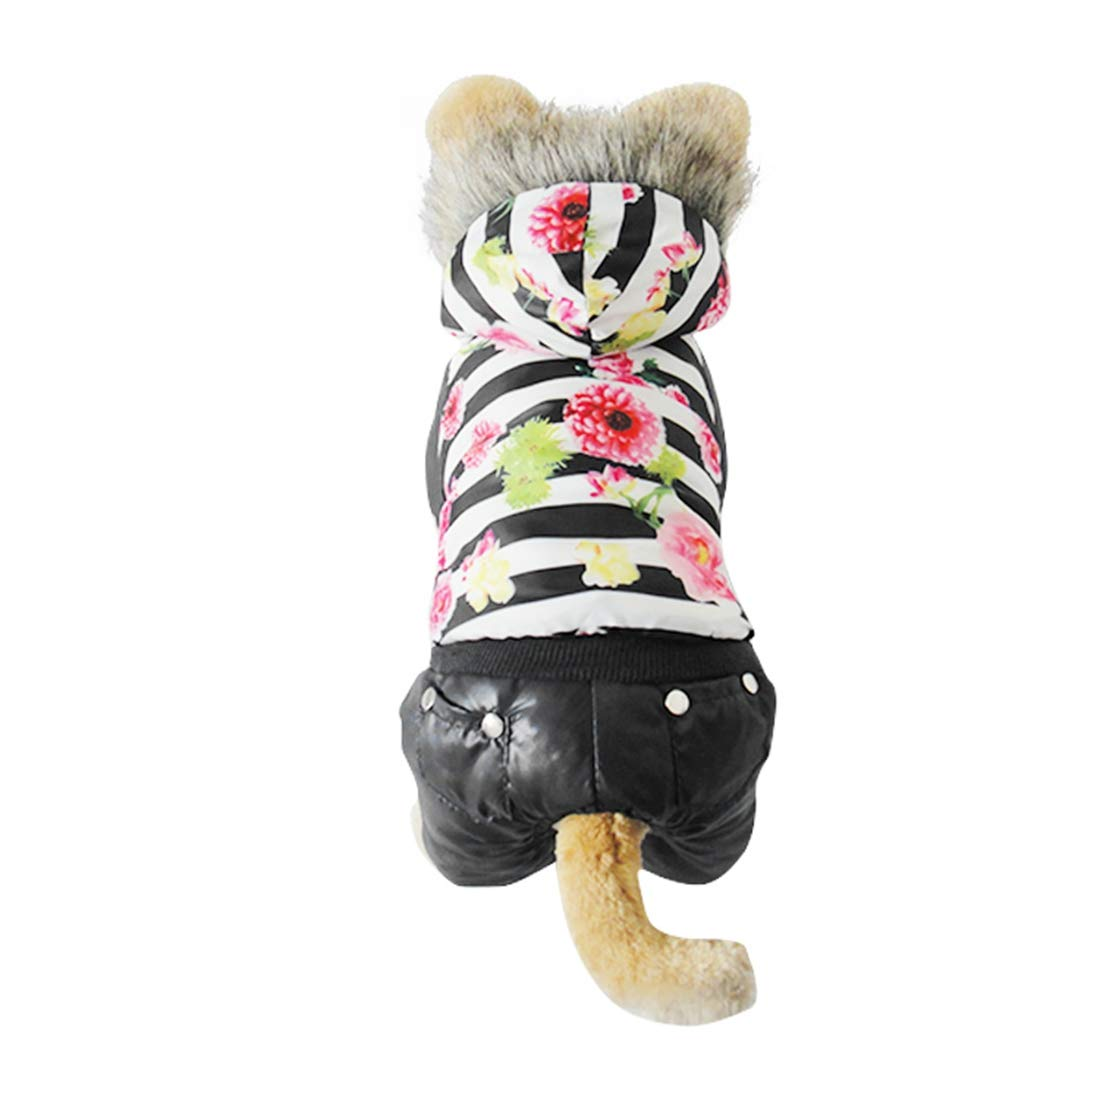 Black XL Black XL MISSKERVINFENDRIYUN YY4 Autumn and Winter Season Pet Clothes Luxury Fur Flower Down Jacket Dog Clothing (color   Black, Size   XL)